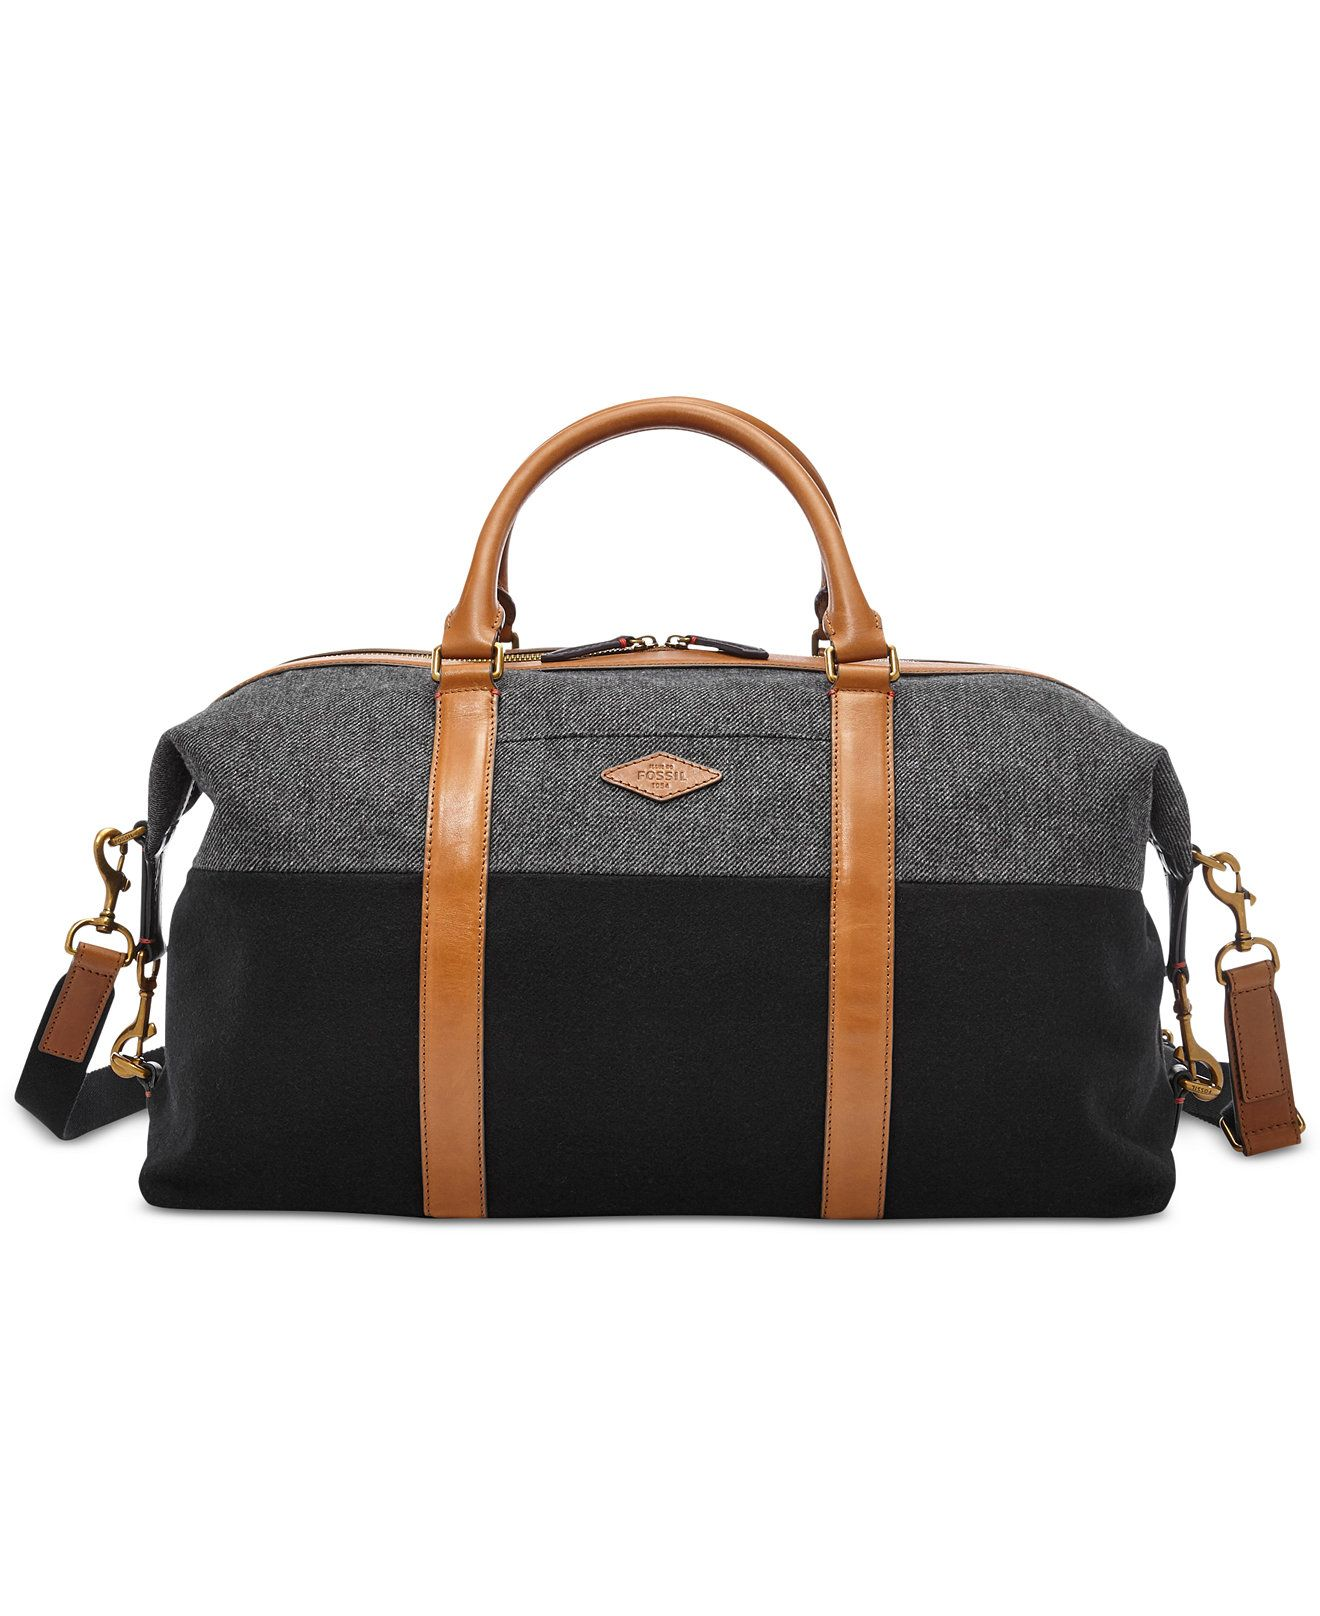 ca6fc56b867 Fossil Campbell Weekender - Bags   Backpacks - Men - Macy s ...